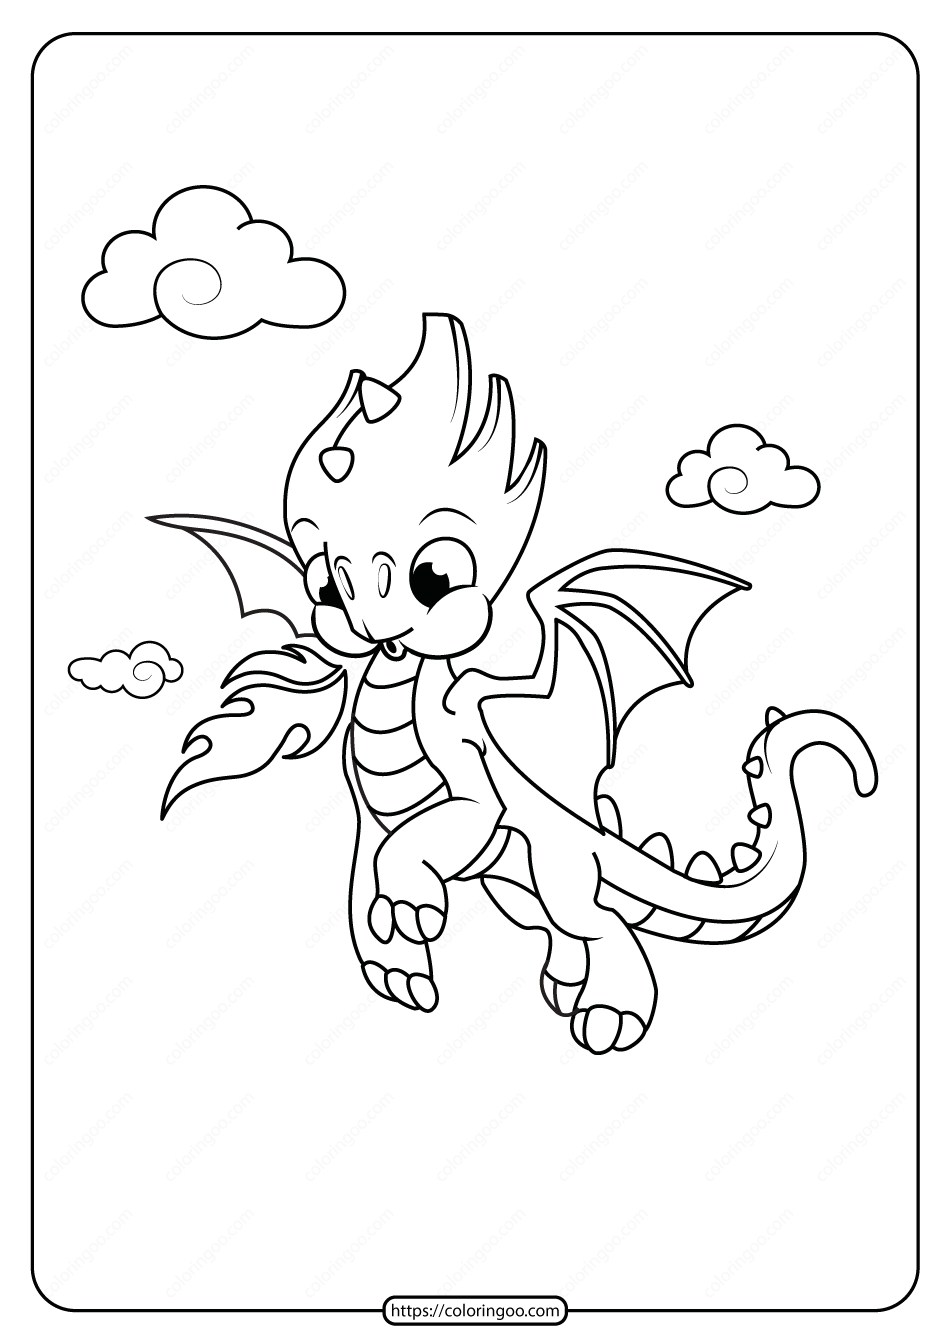 Free Printable Animals Dinosaur Coloring Pages 23